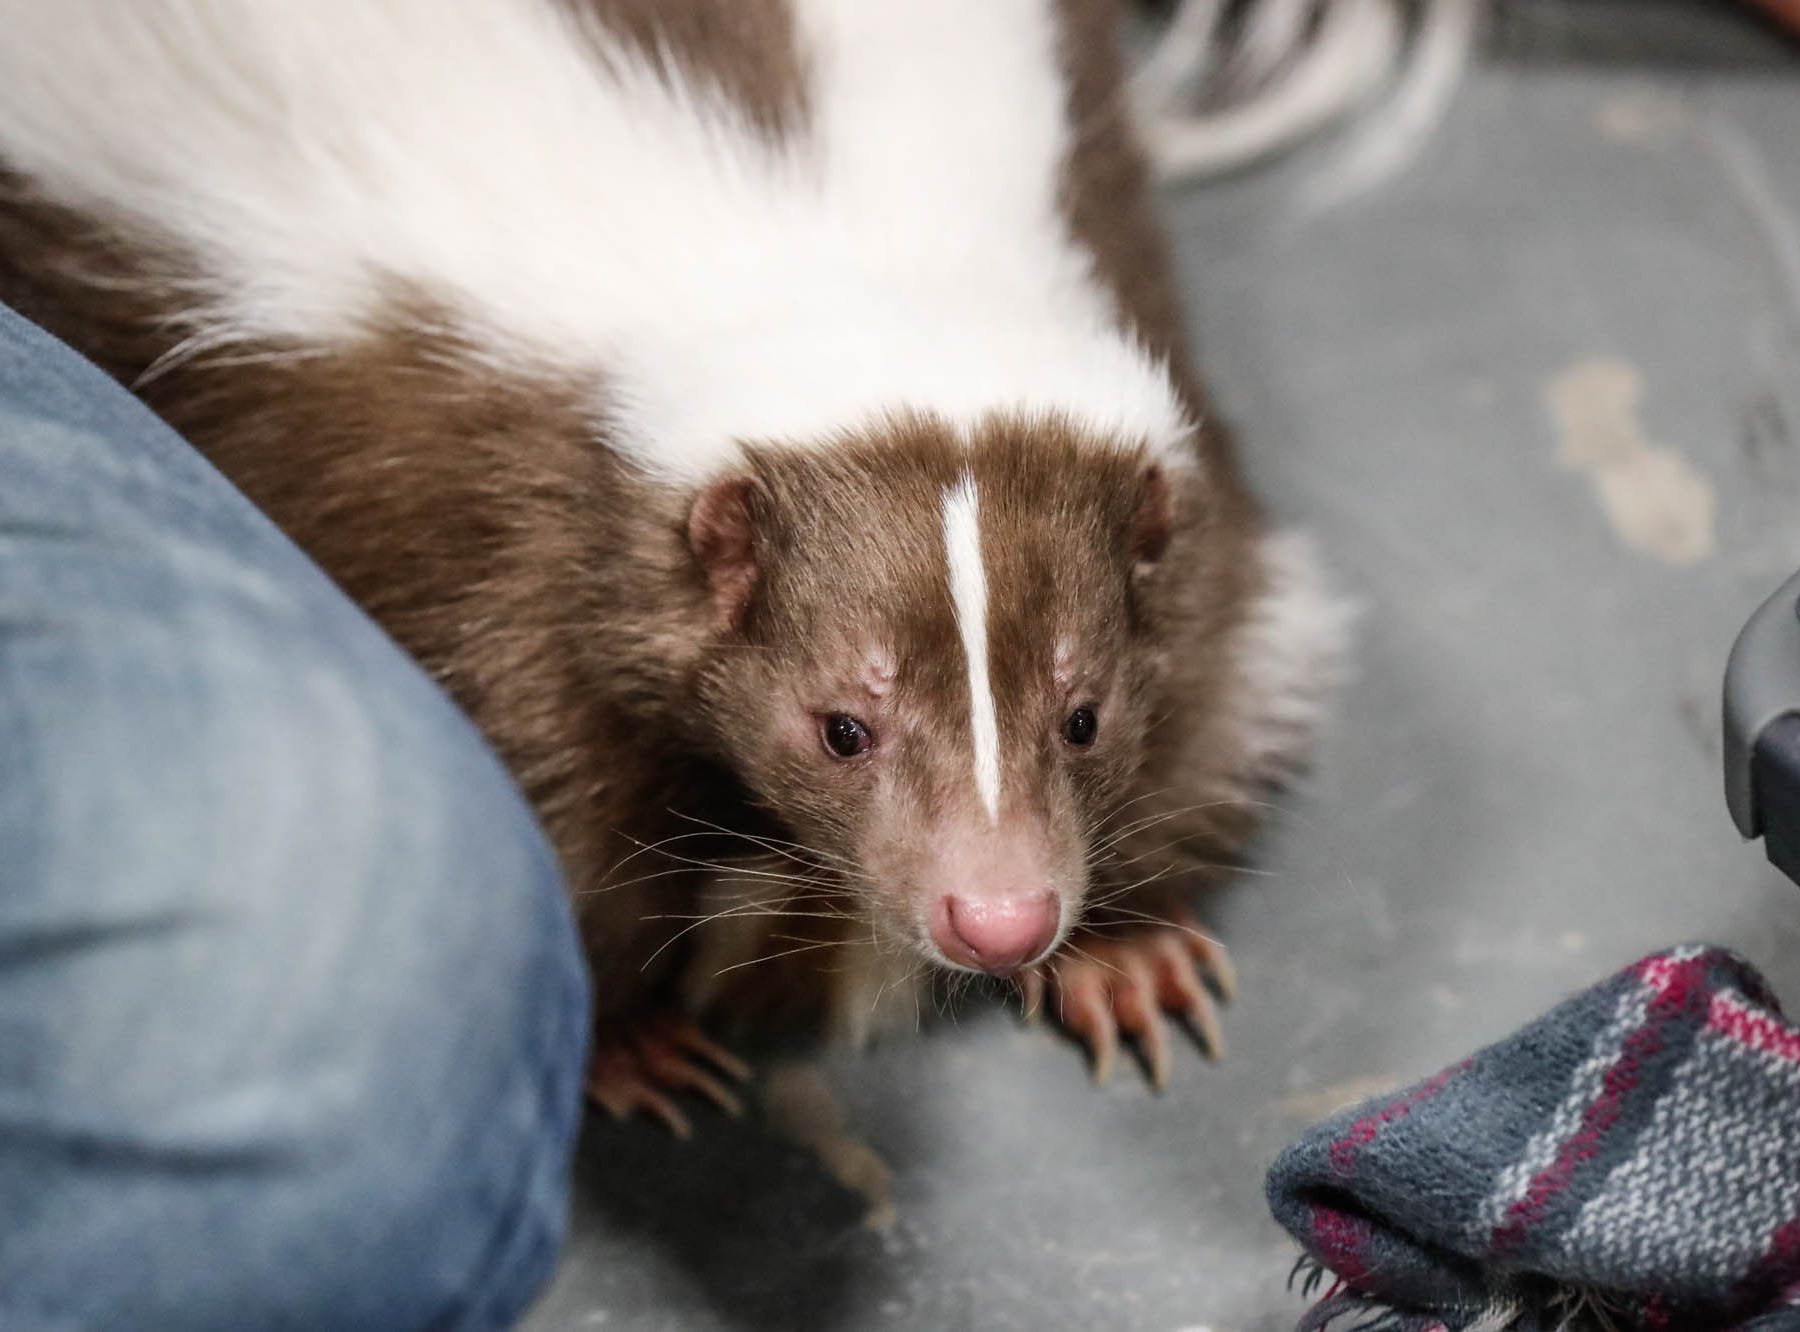 Gizmo the skunk makes an appearance at the Great Indy Pet Expo, held at the Indiana State Fairgrounds on Sat. Nov. 10, 2018.